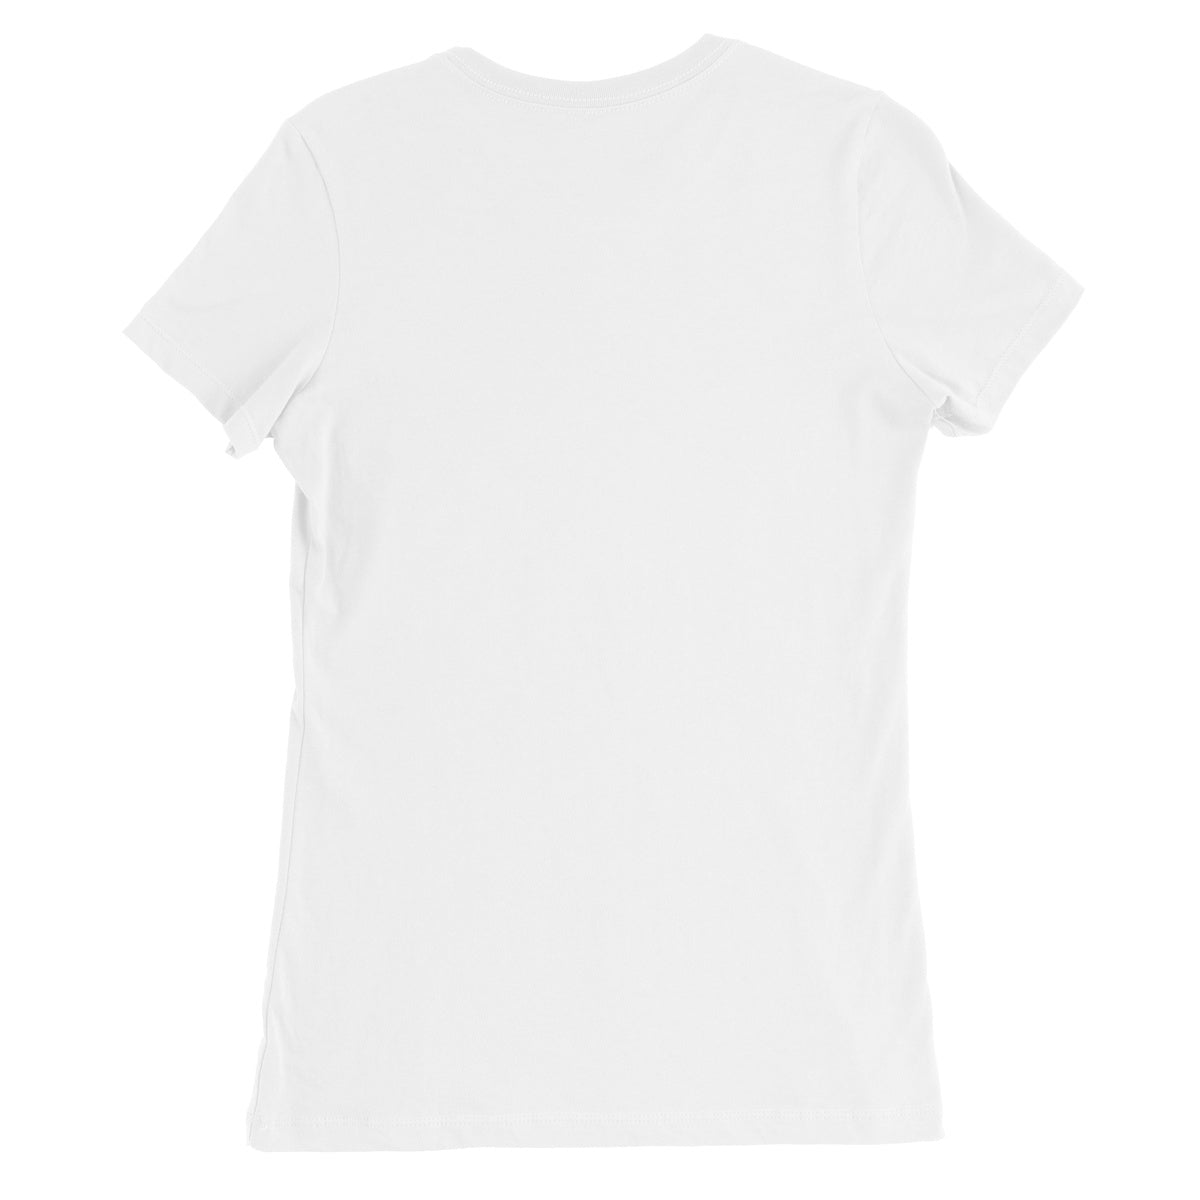 The Cafe Women's Favourite T-Shirt